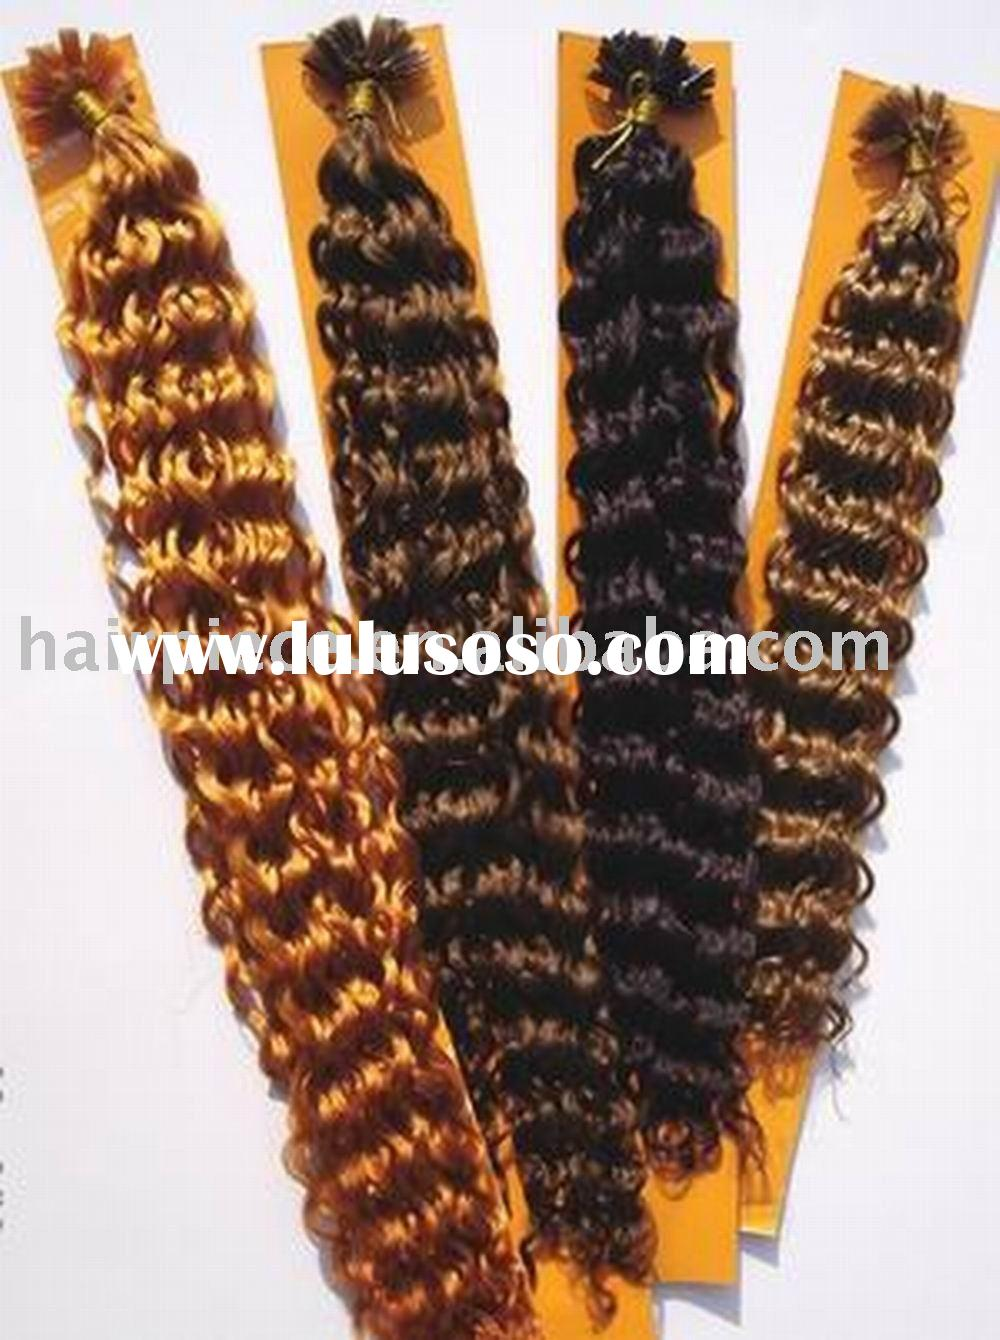 keratin nail-tip/u-tip human hair extension/wig/remi hair extension/cheap hair extension